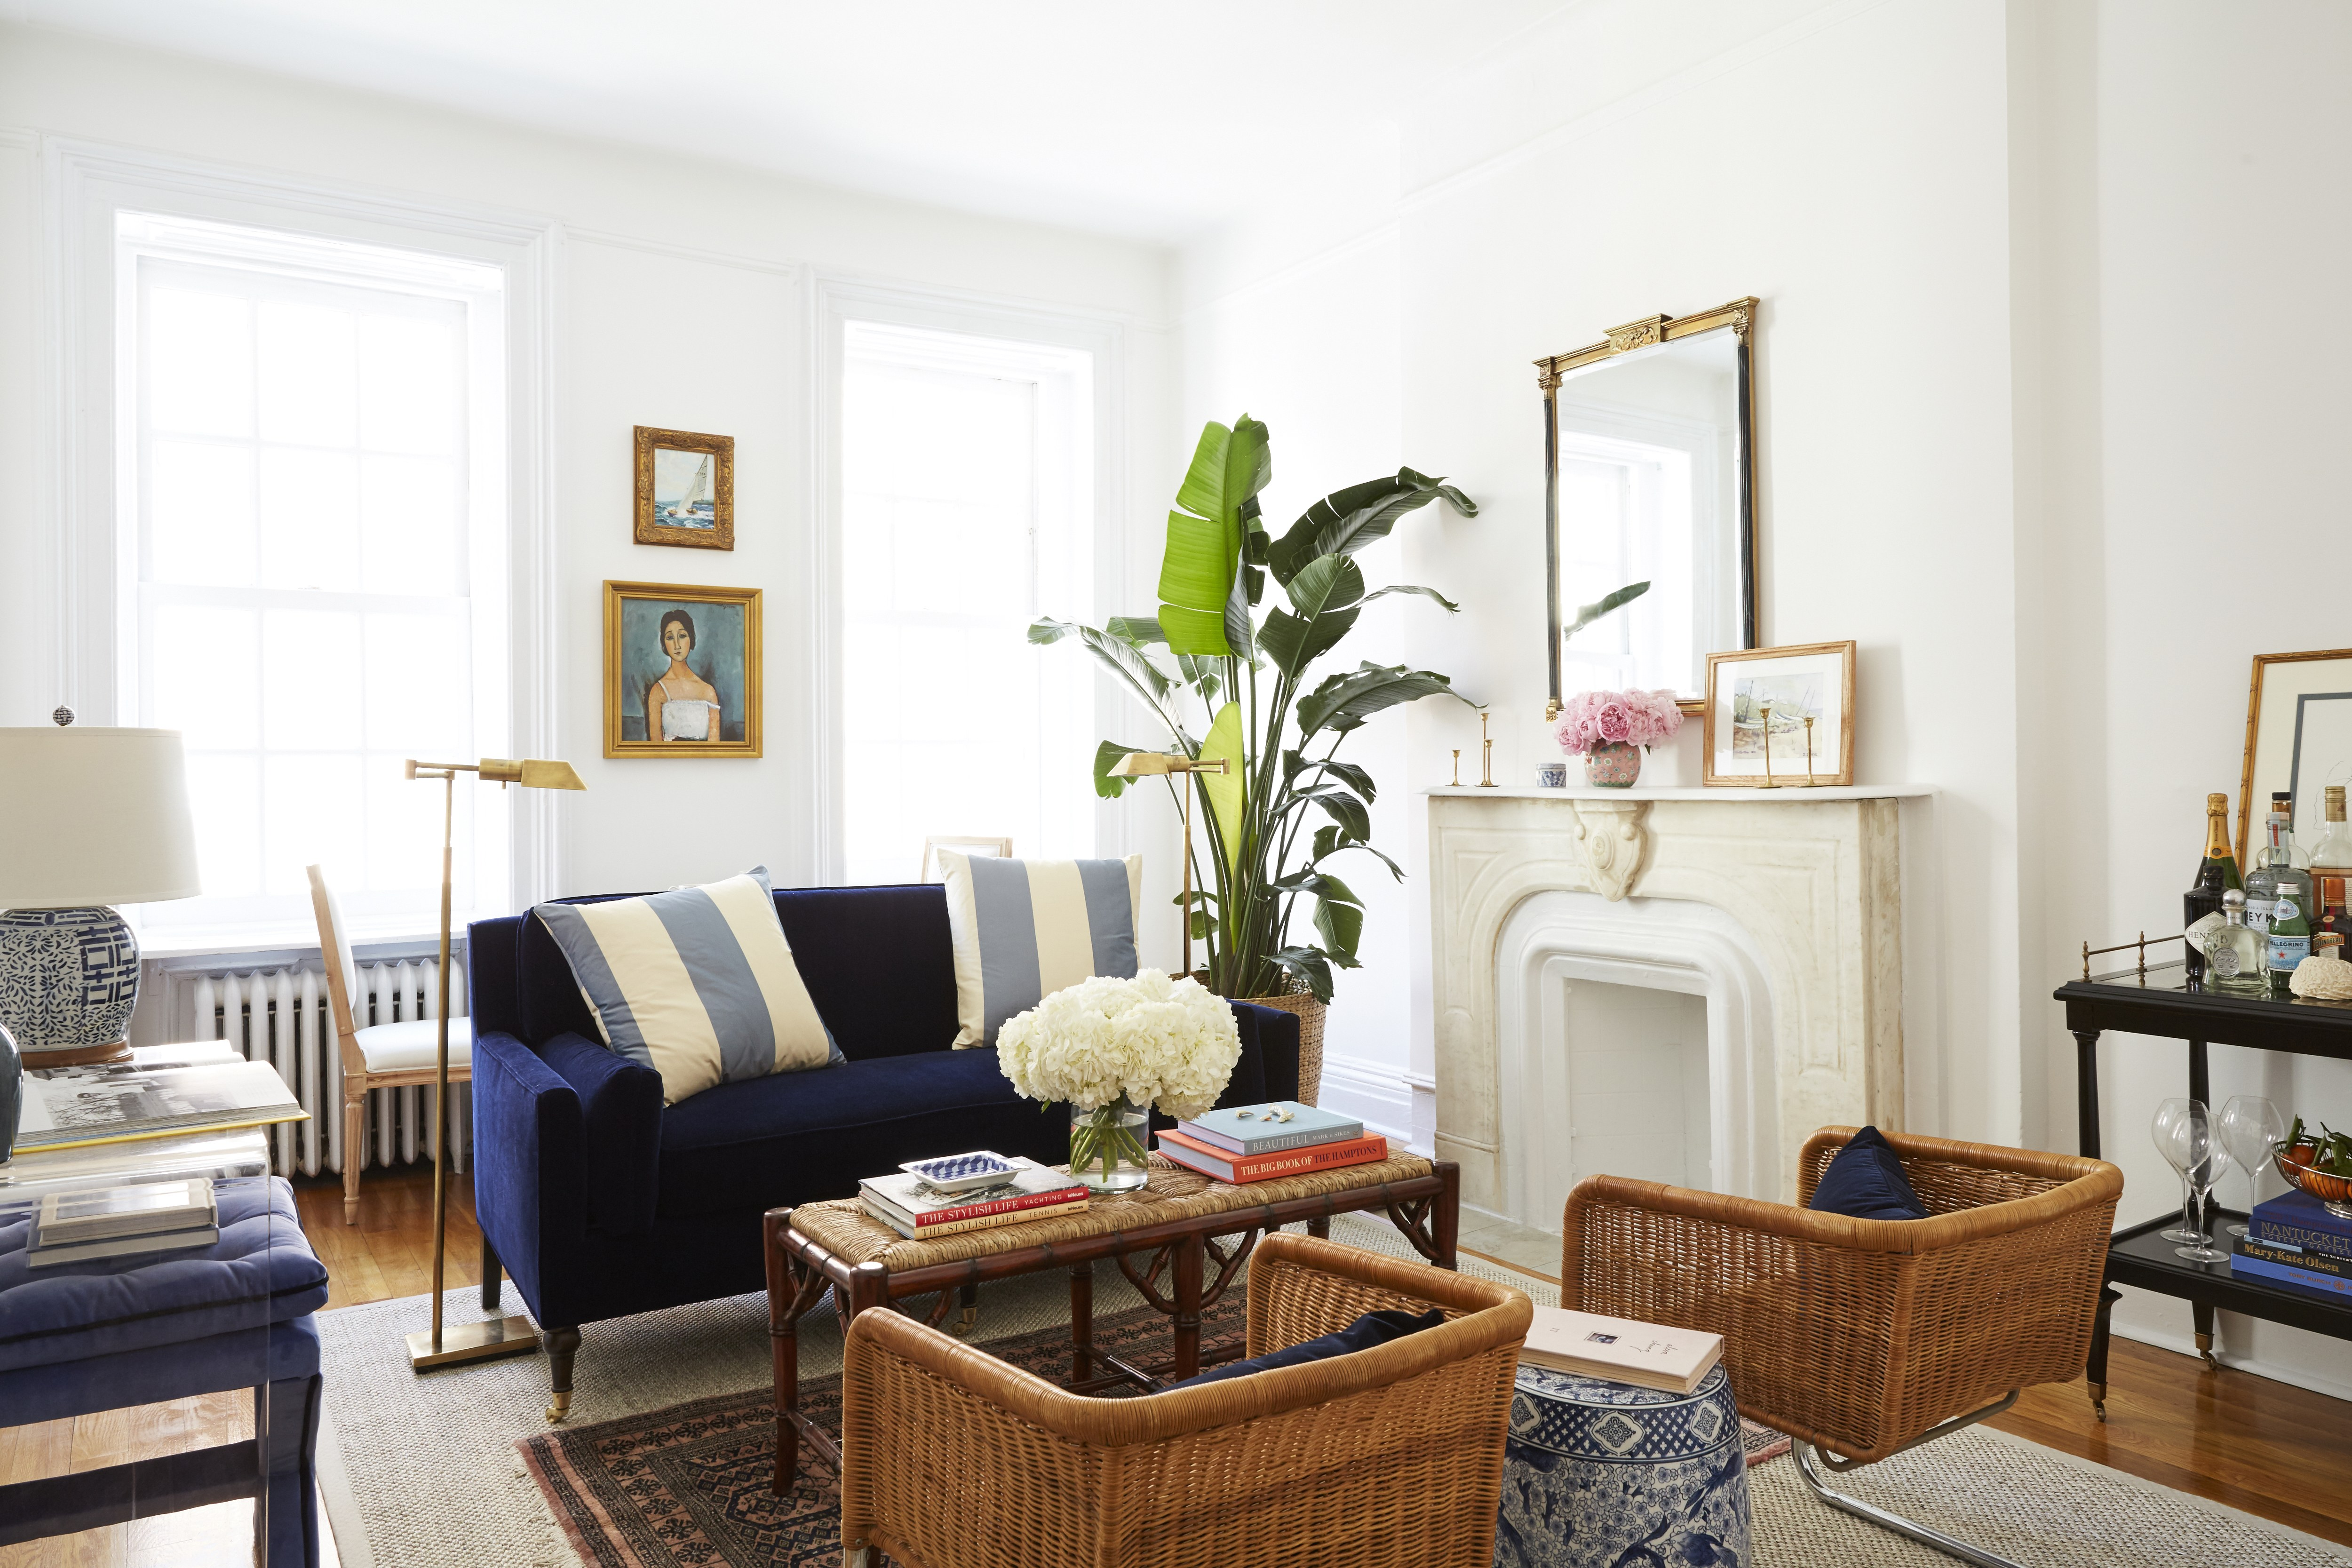 8 Small Living Room Ideas That Will Maximize Your Space - Architectural  Digest